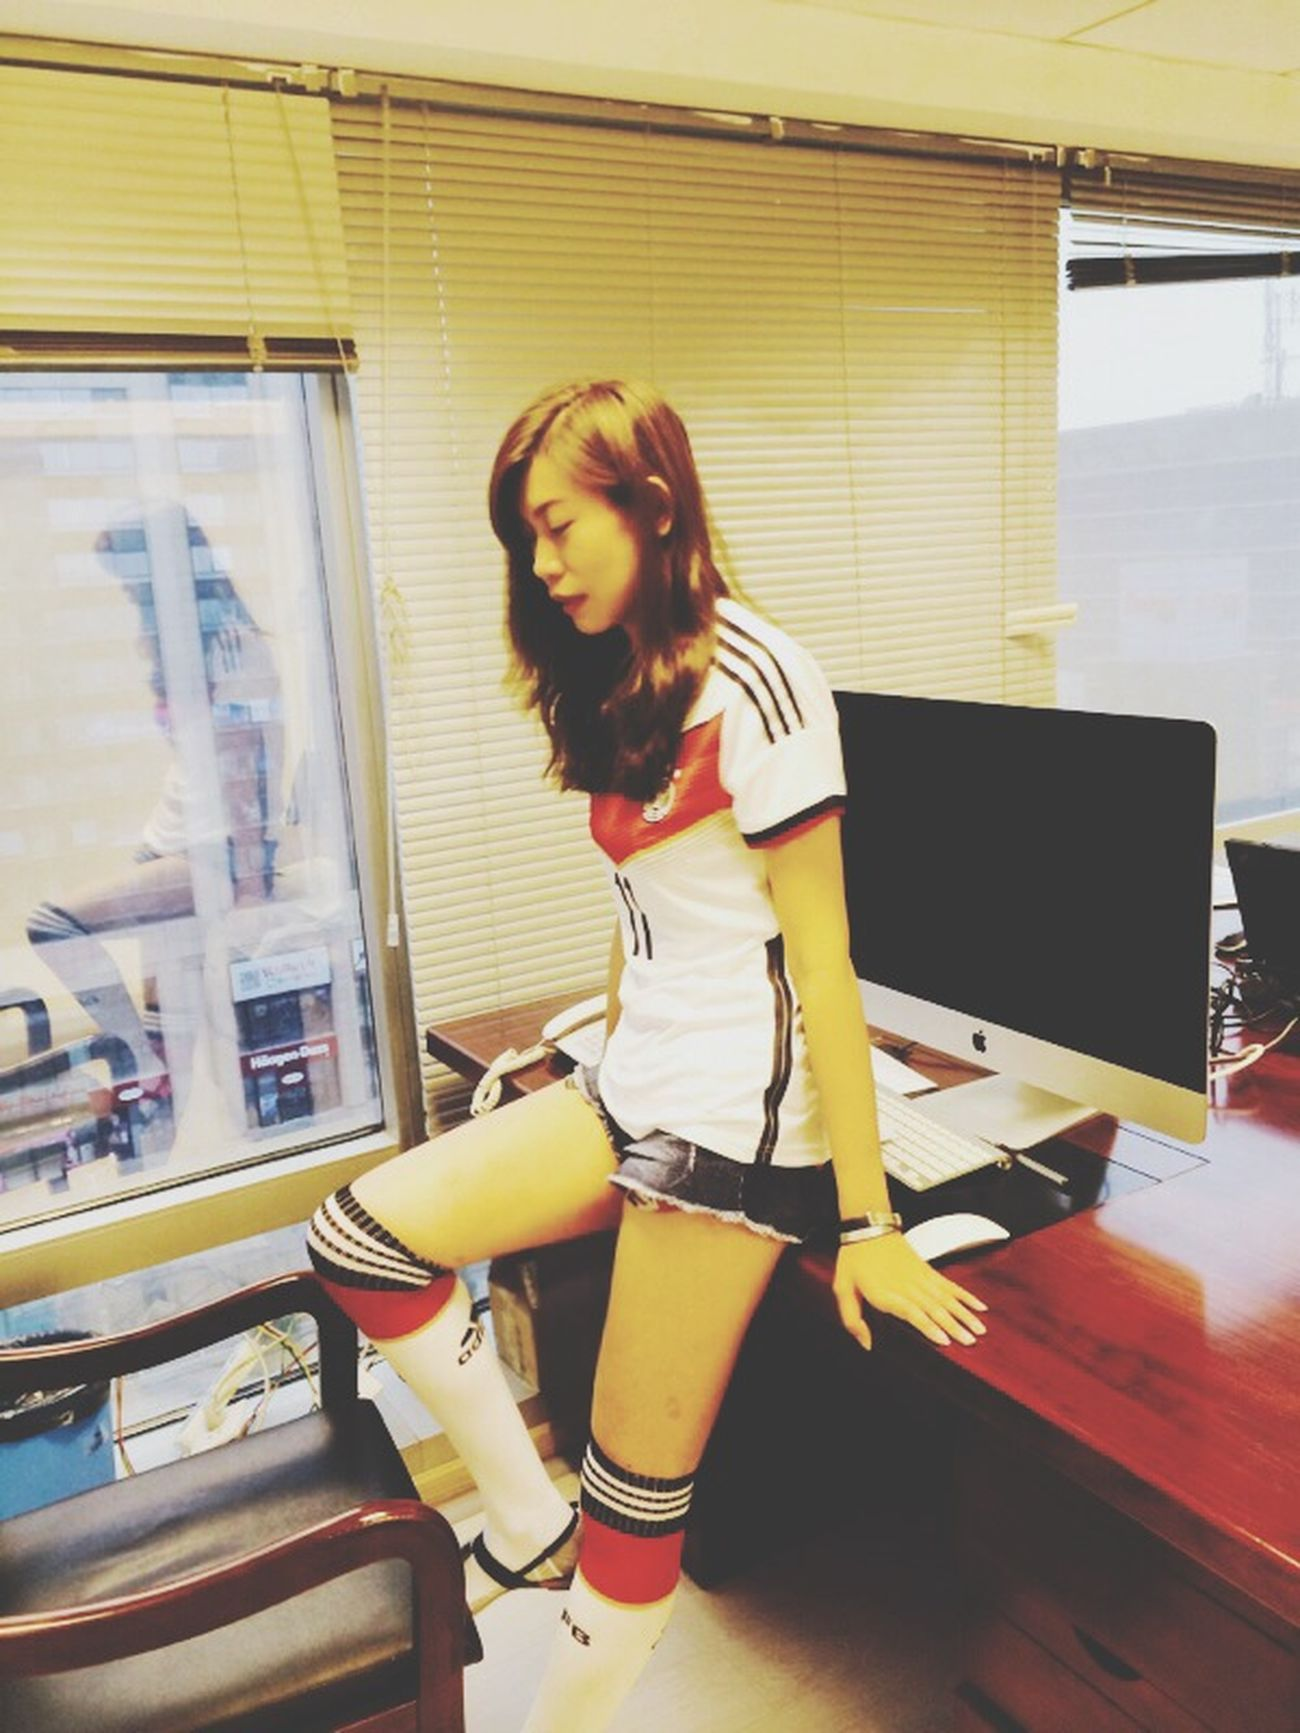 For tonight World Cup Germany team! Brazil 2014 World Cup Soccer Today's Hot Look We Are Onefootball